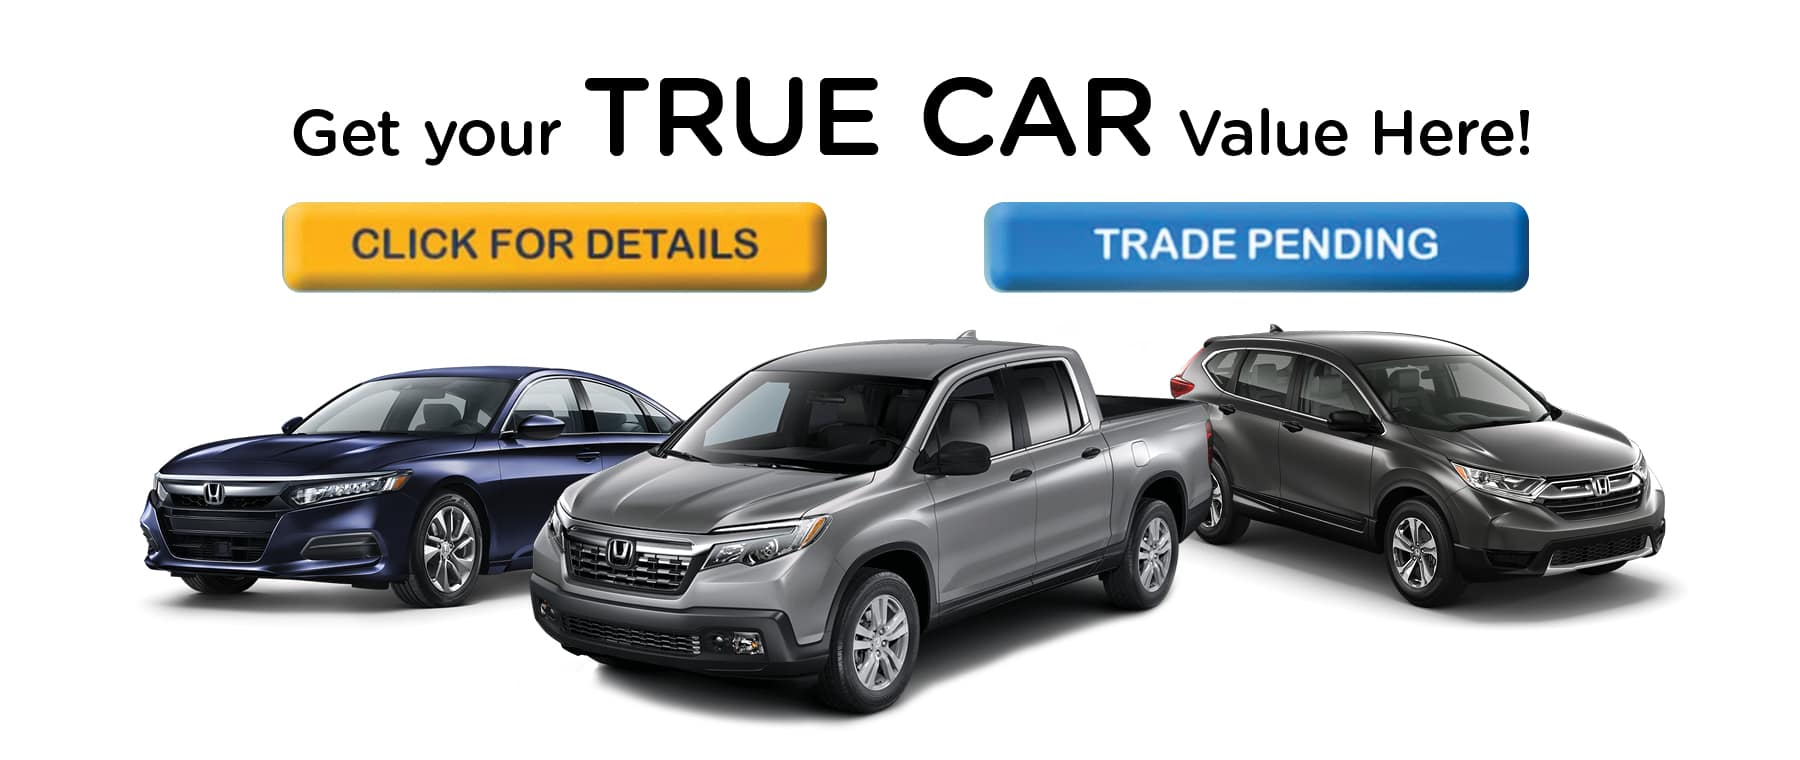 Toyota Dealership Dayton Ohio >> Honda Dealers Dayton Ohio 2019 Deals At Germain Honda Of Beavercreek